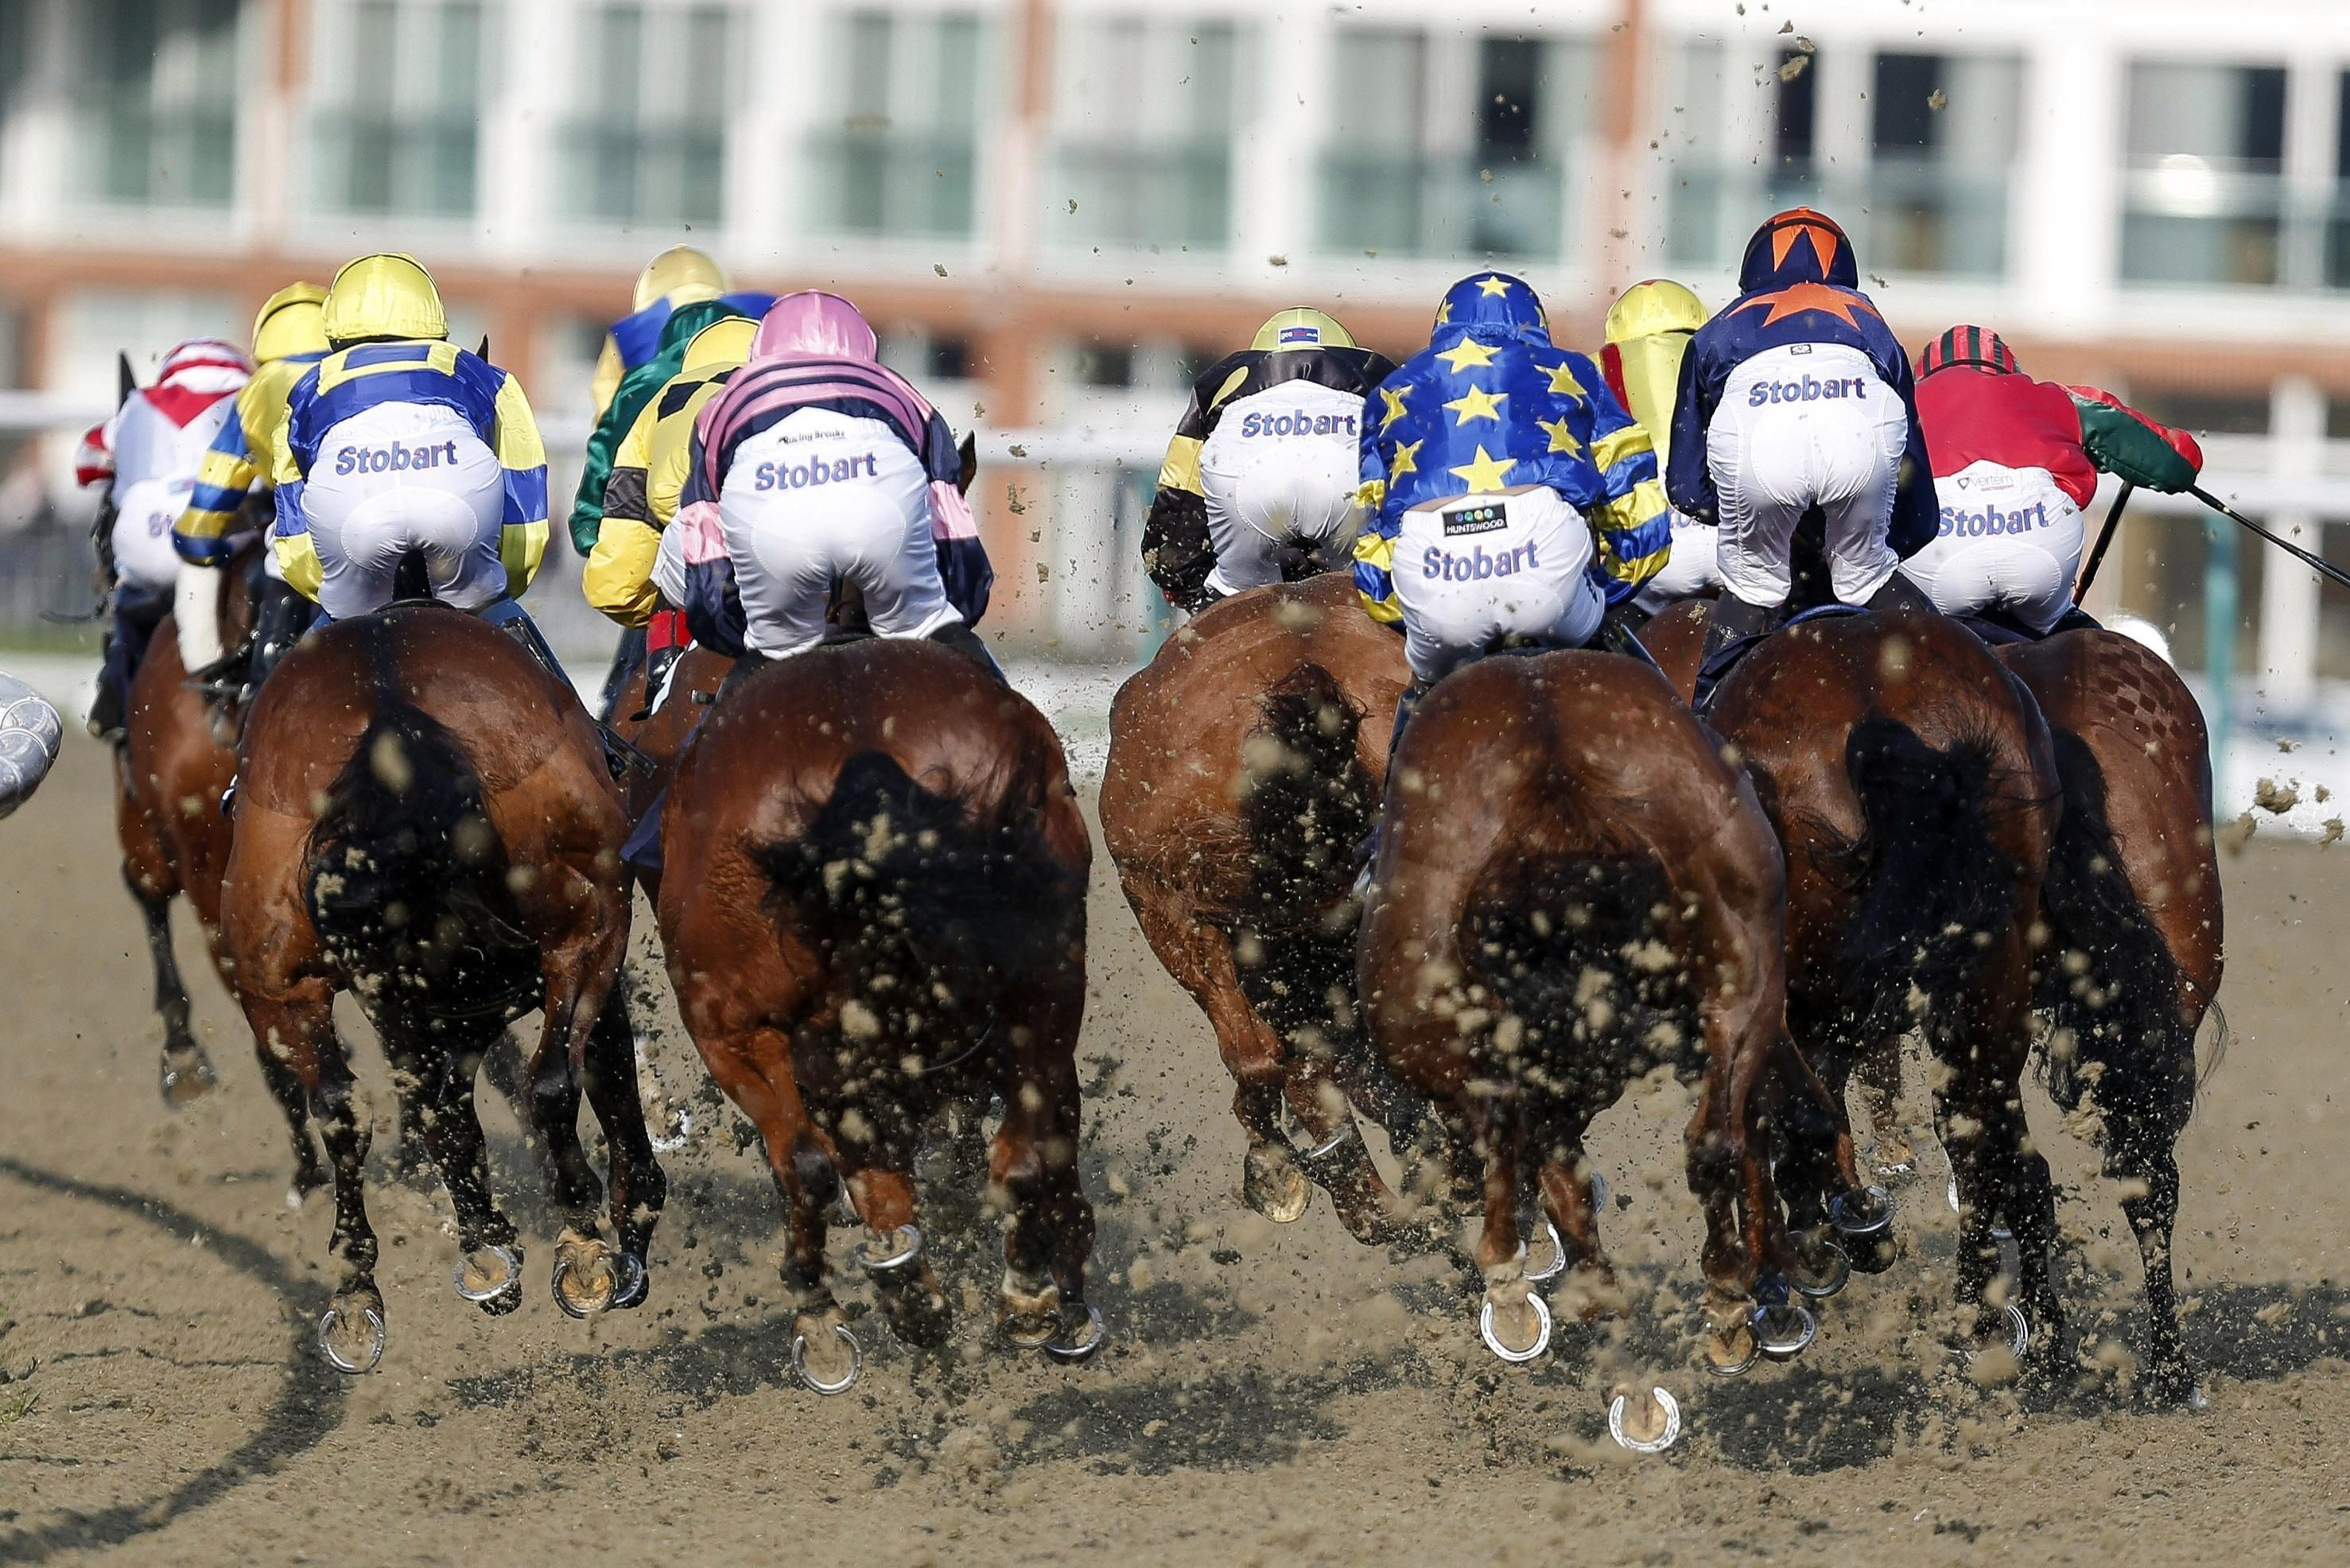 Horse racing tips: Lingfield- Templegate's betting preview for the racing this Monday, March 19